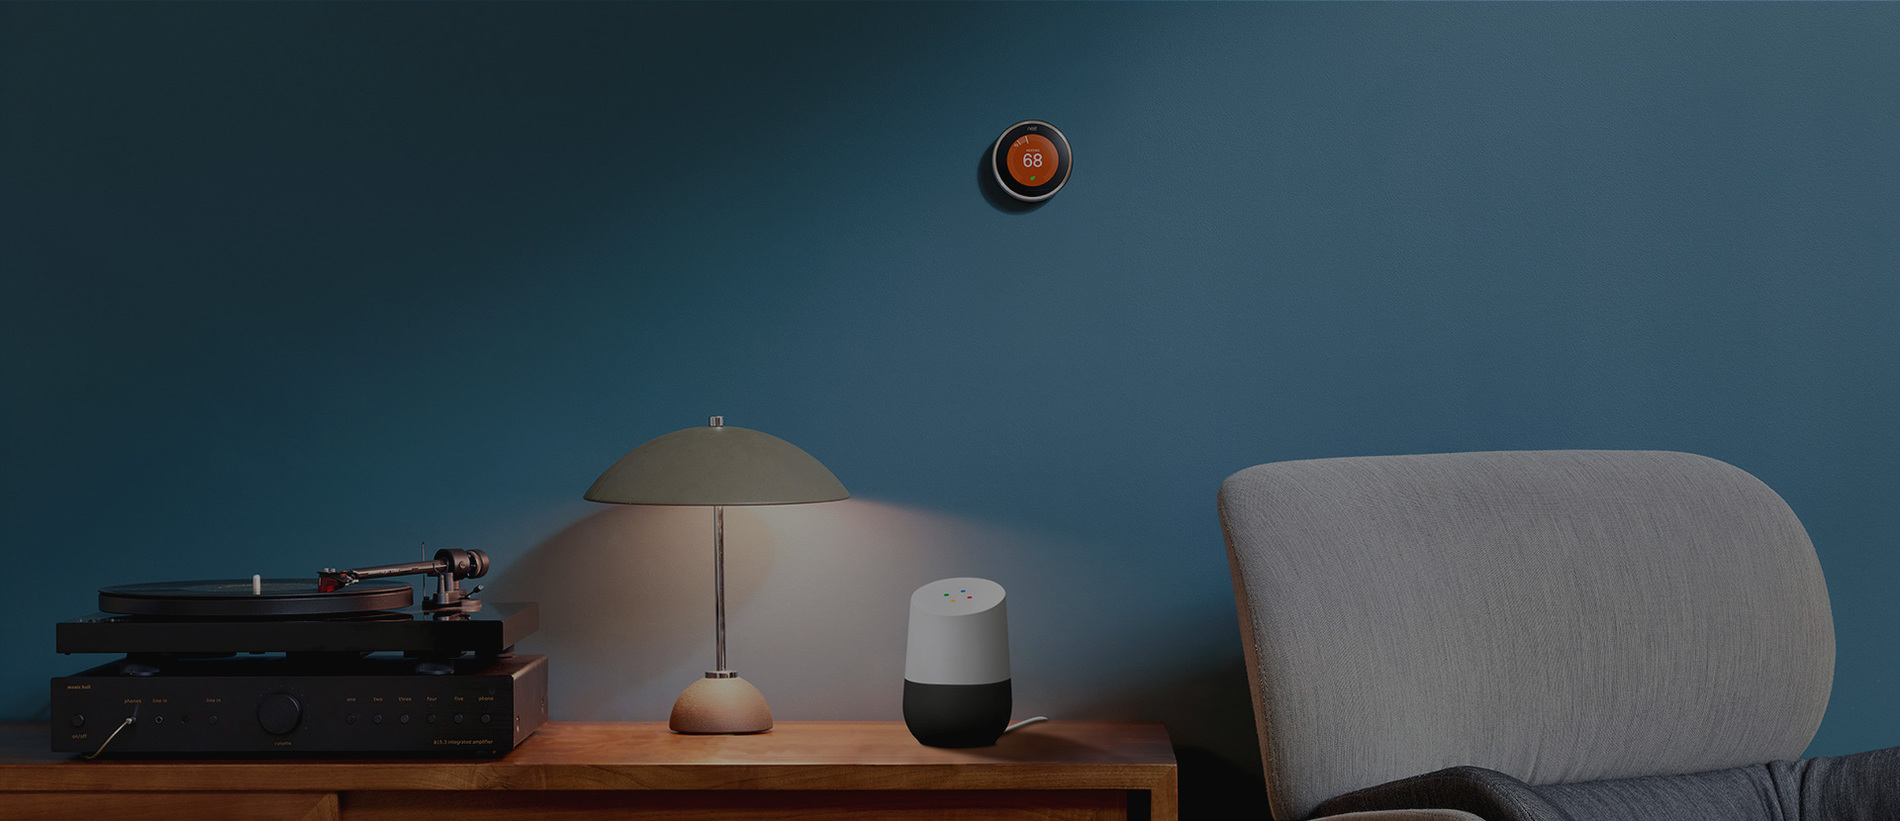 Living room photo of a connected Smart Home with Google Home and connected thermostat devices